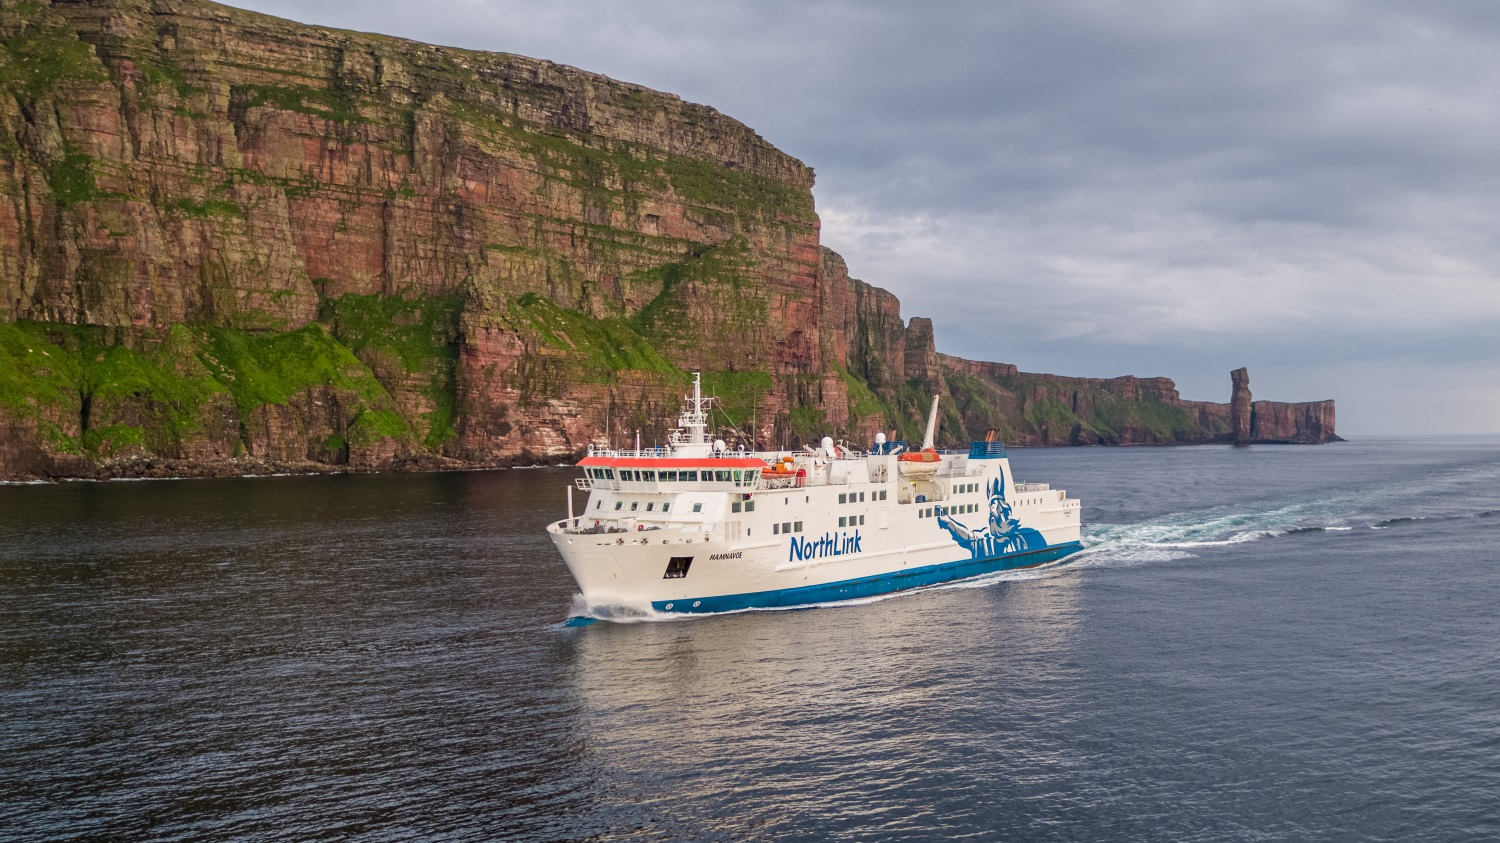 NorthLink Ferry off the Old Man of Hoy, Orkney © NorthLink Ferries